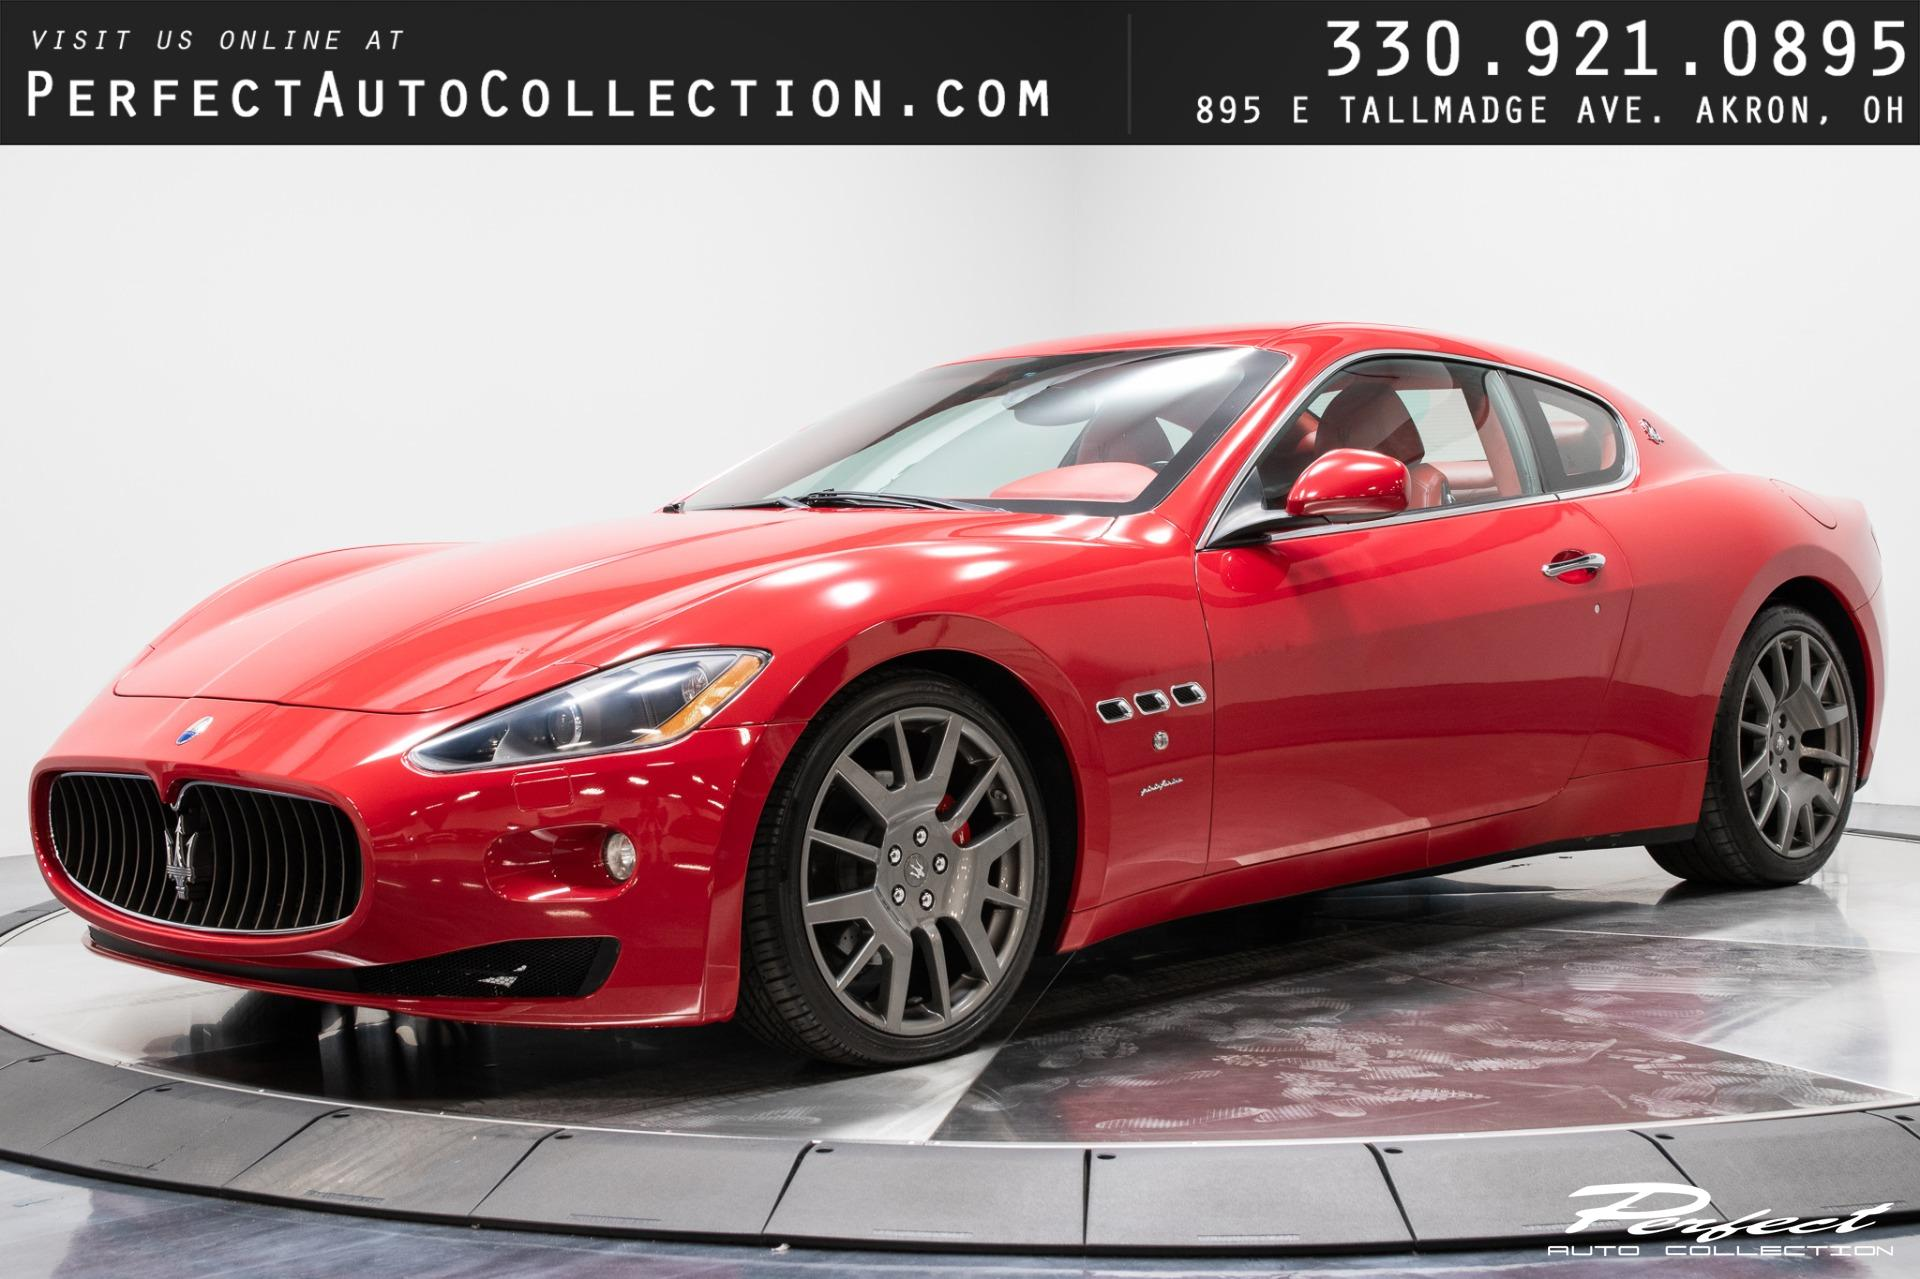 Used 2008 Maserati GranTurismo Base for sale $31,293 at Perfect Auto Collection in Akron OH 44310 1